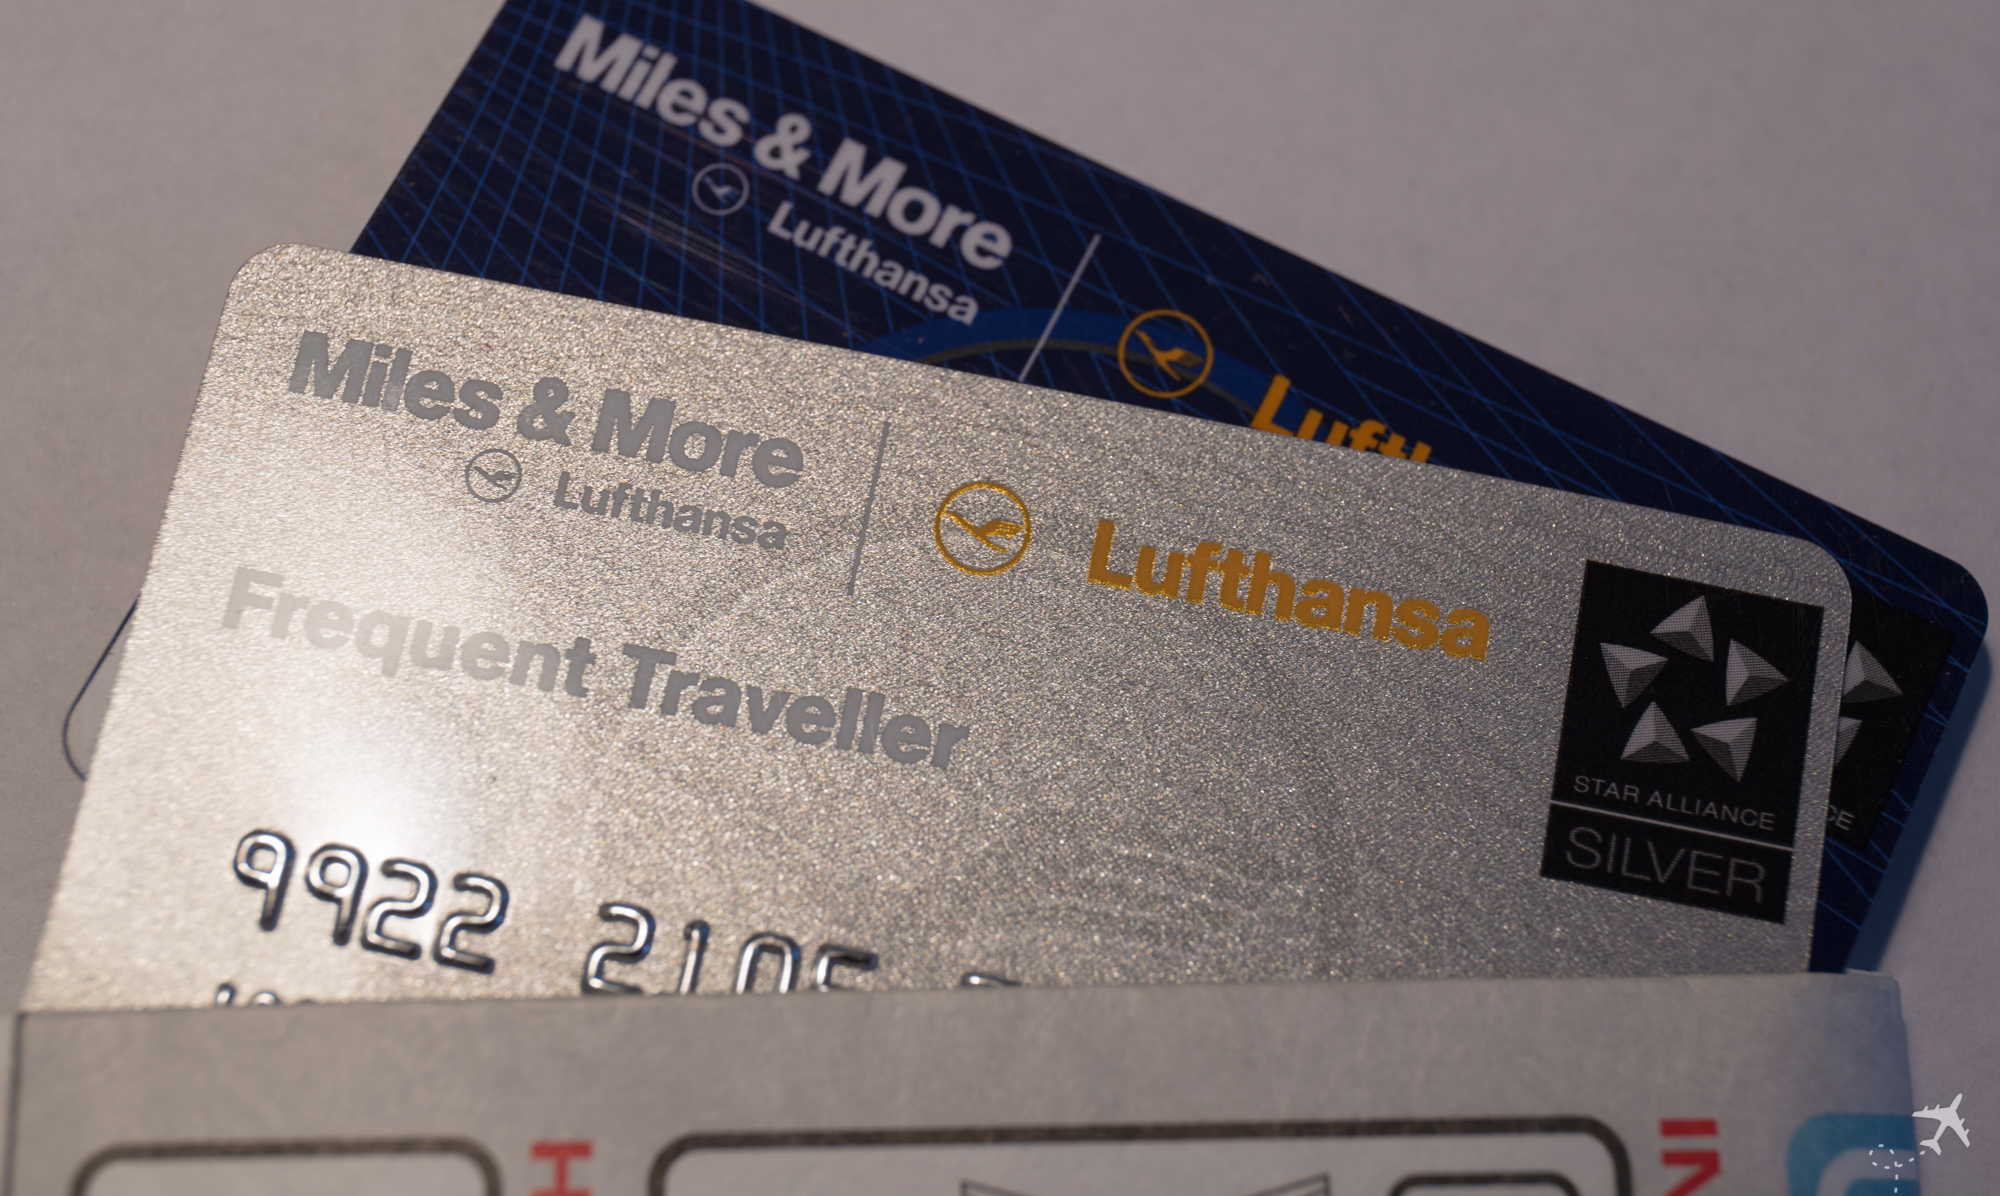 Miles&More Frequent Traveller Karte